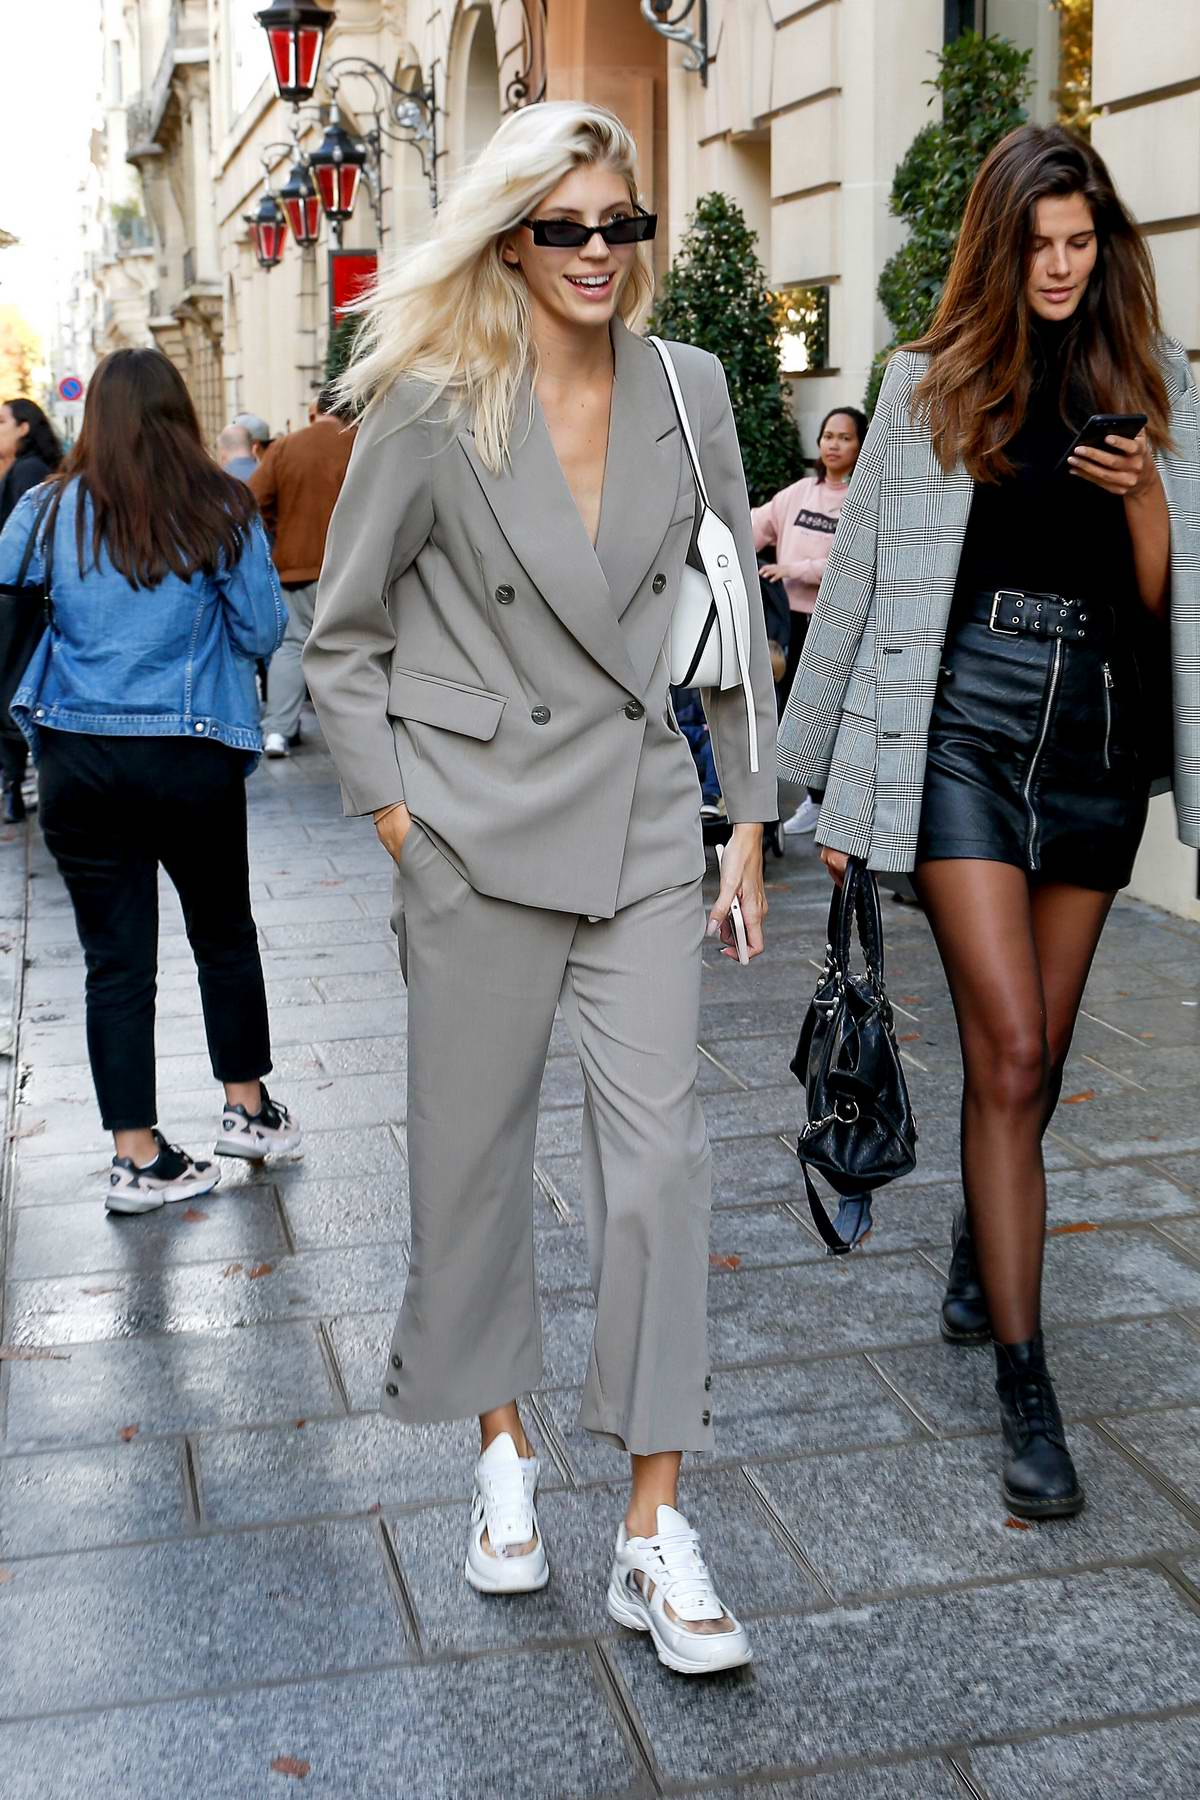 Devon Windsor wears a grey suit with white Chanel sneakers as she leaves her hotel during PFW in Paris, France